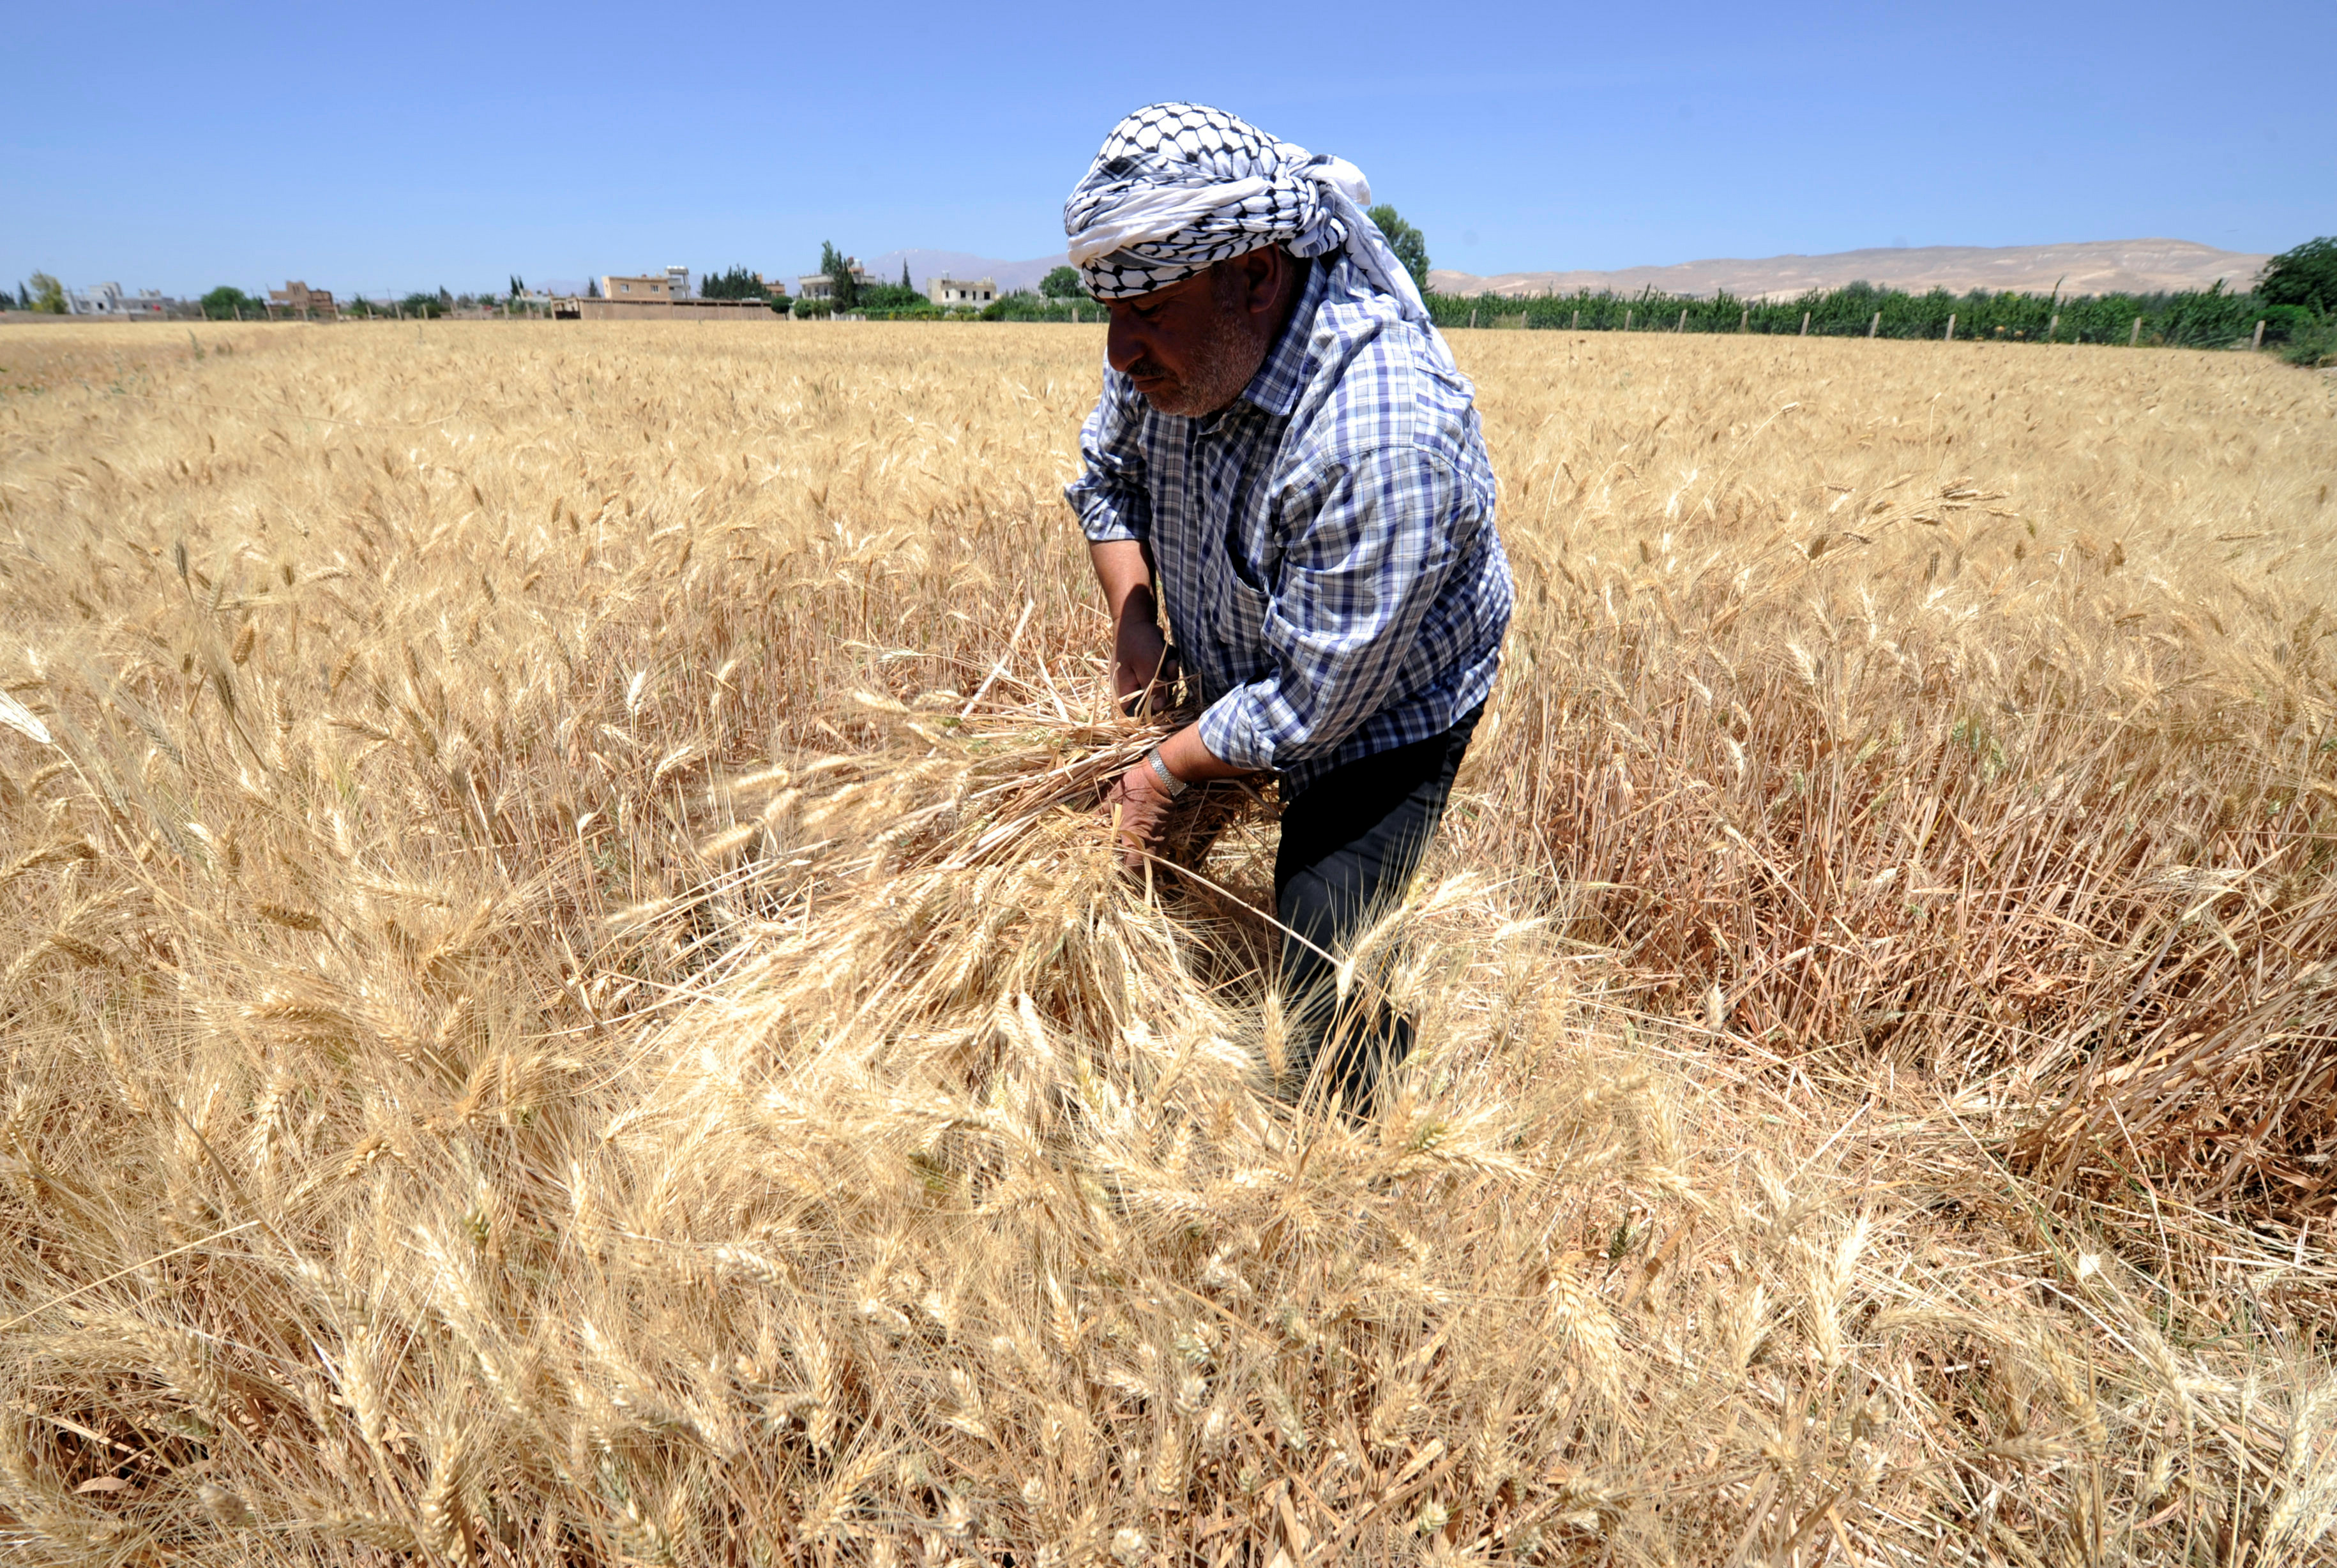 FILE - A farmer harvests wheat in a field in Jdeidet Artouz, a suburb southwest of Damascus, Syria, June 19, 2017.